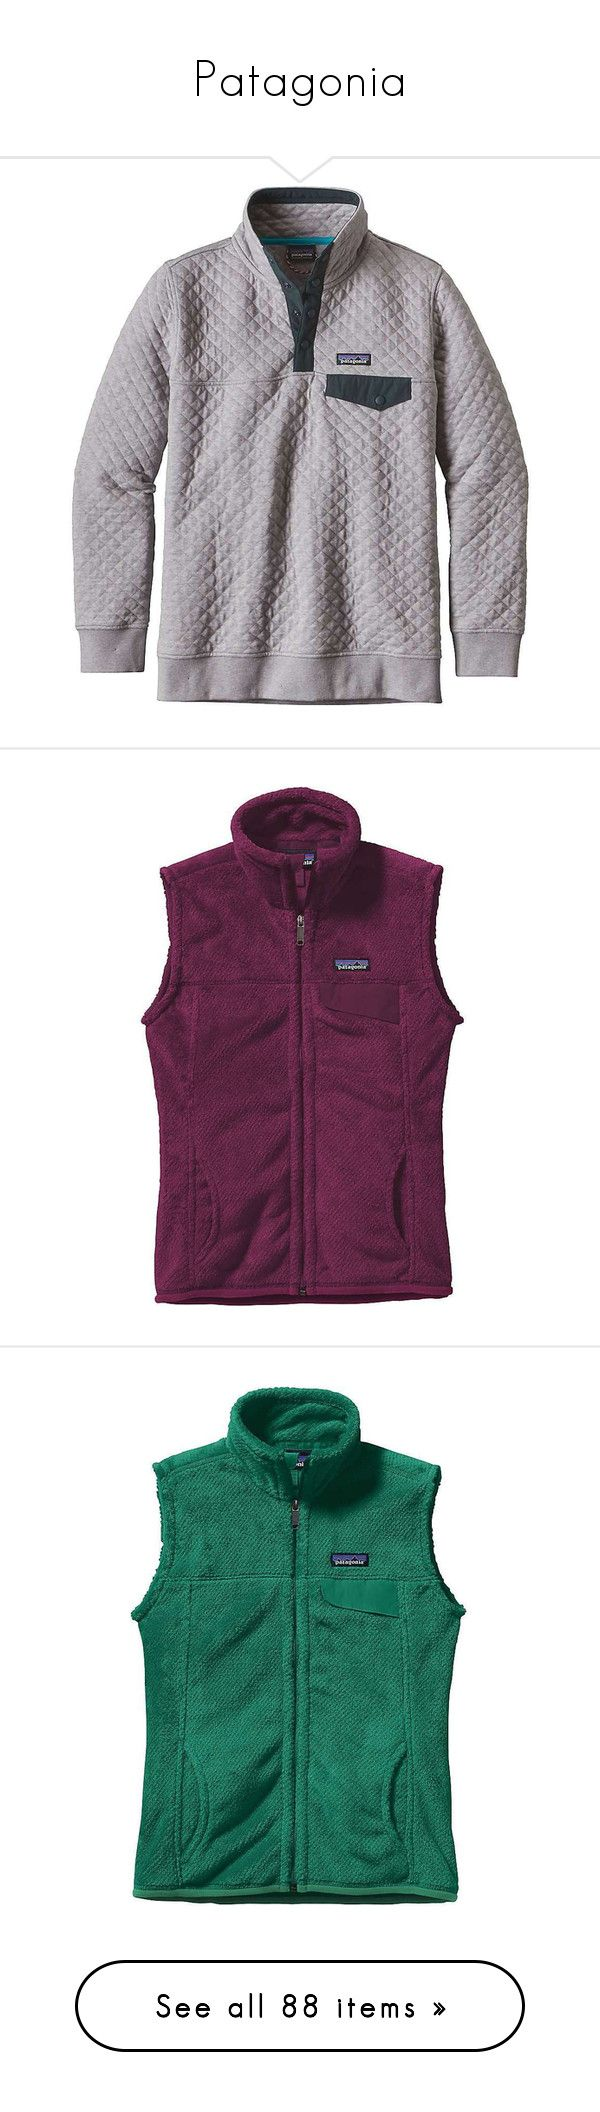 """""""Patagonia"""" by katieduffyy ❤ liked on Polyvore featuring drifter grey, cotton jersey, patagonia, outerwear, vests, purple waistcoat, purple vest, zipper vest, zip vest and green vest"""